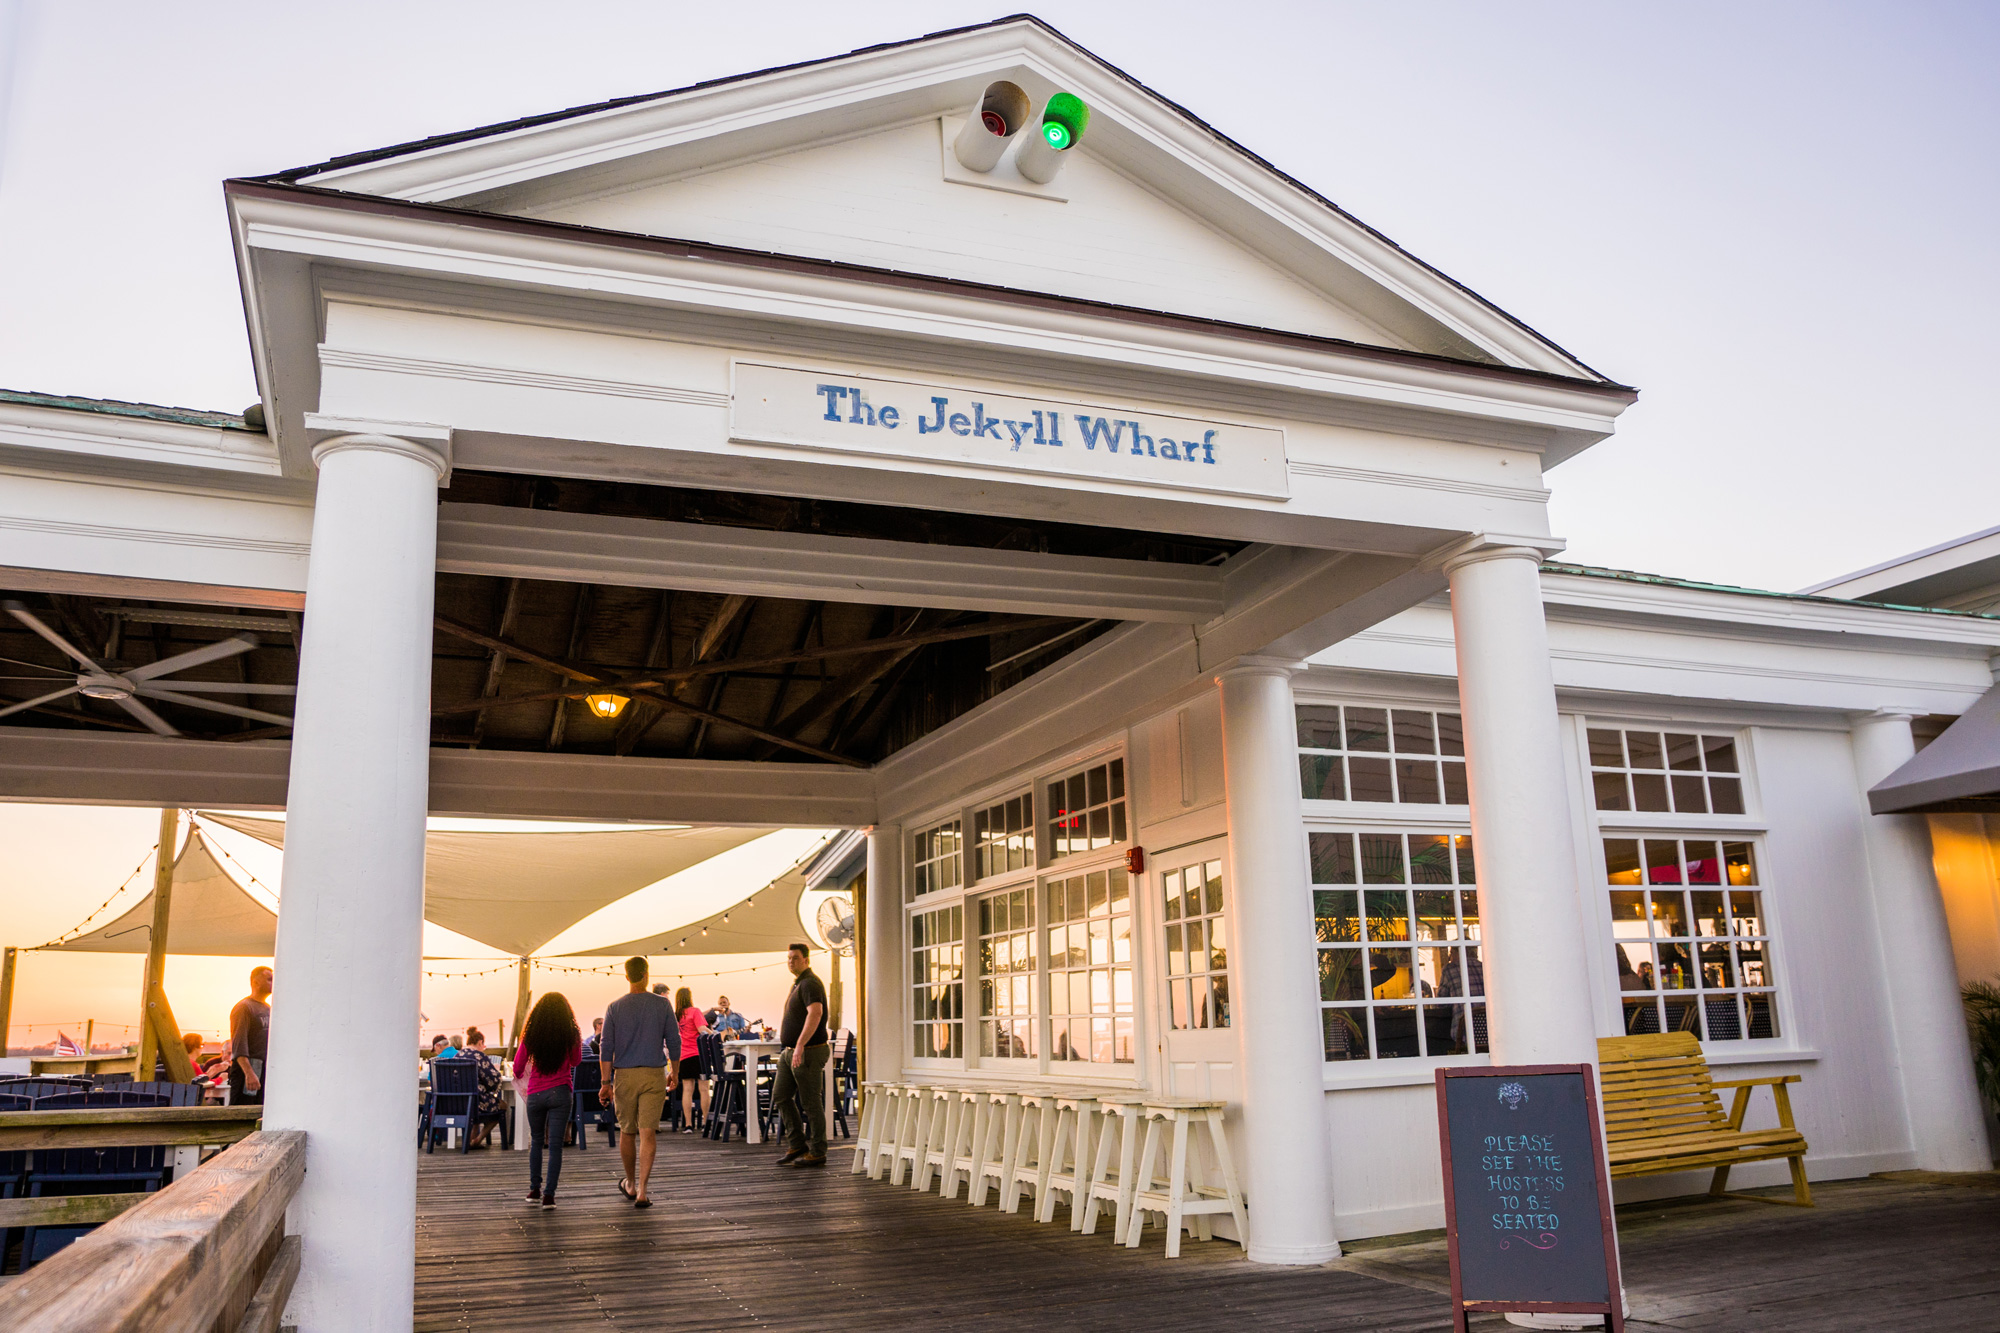 The Wharf on Jekyll Island